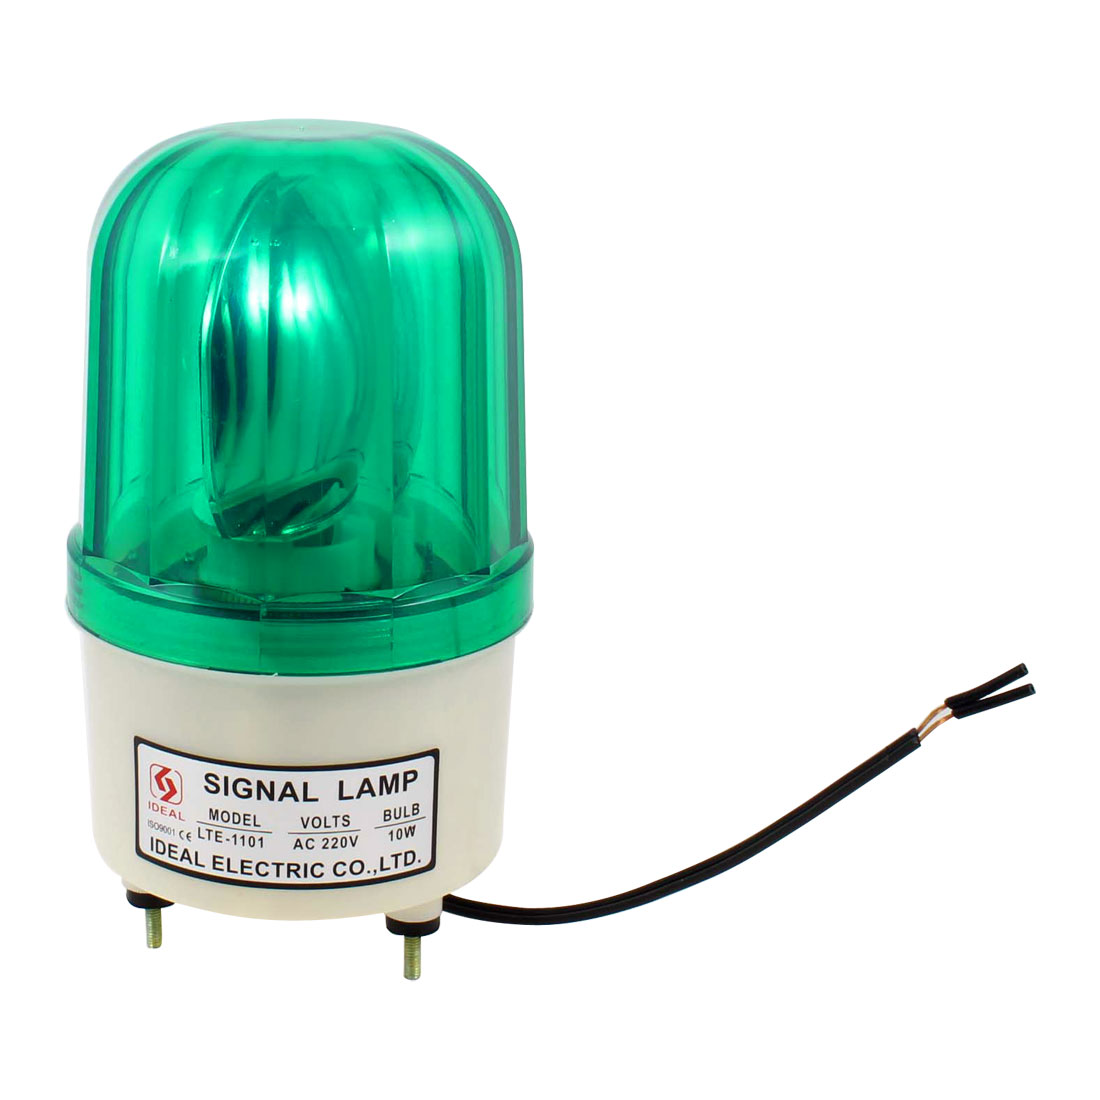 Industrial Green Flash Tower Lamp Stack Signal Warning Light 220V AC 10W